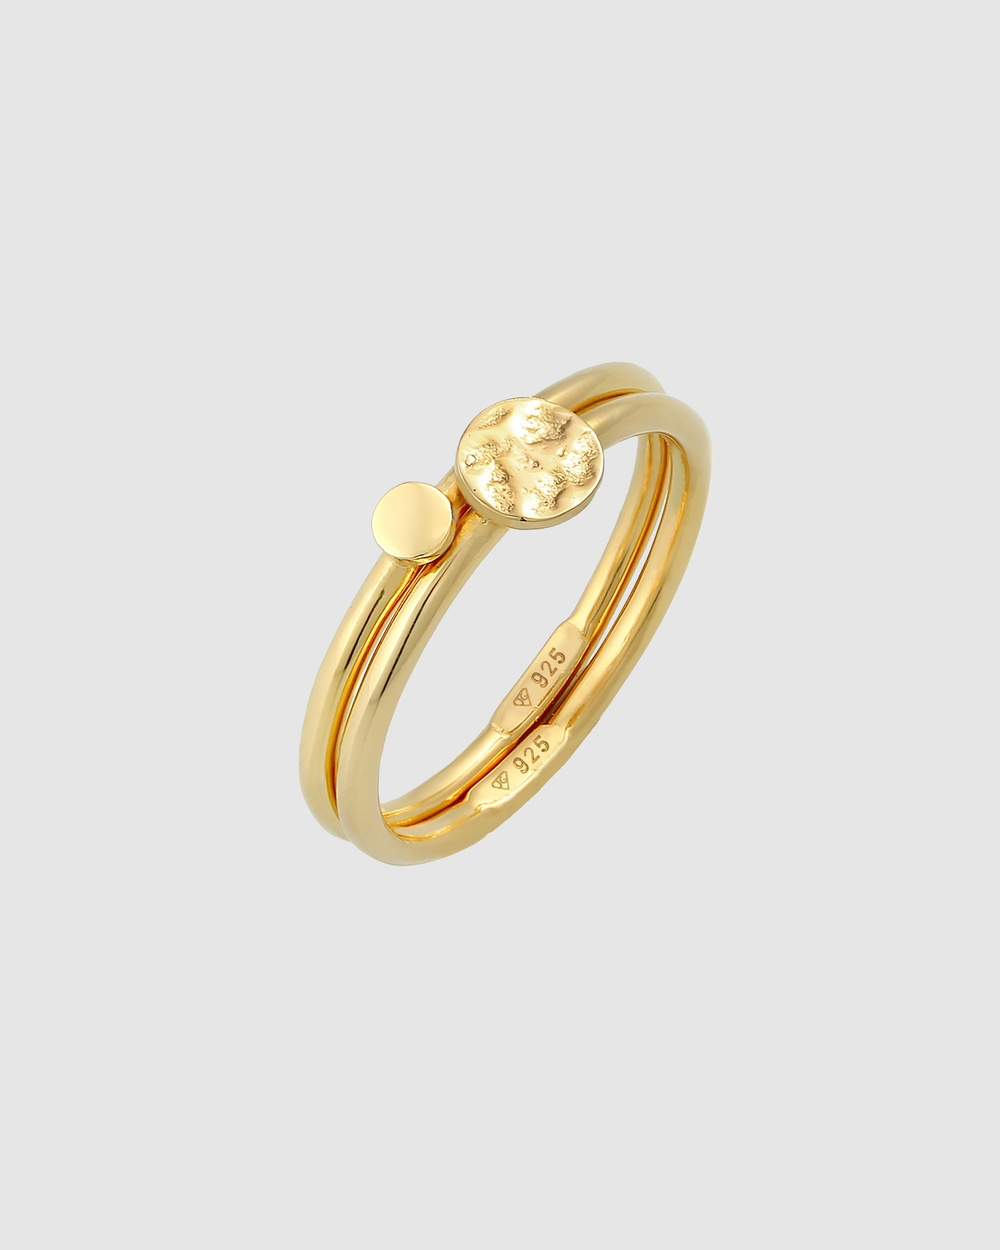 Elli Jewelry Ring Stacking Duo Circle Plate Trend in 925 Sterling Silver Gold Plated Jewellery Gold